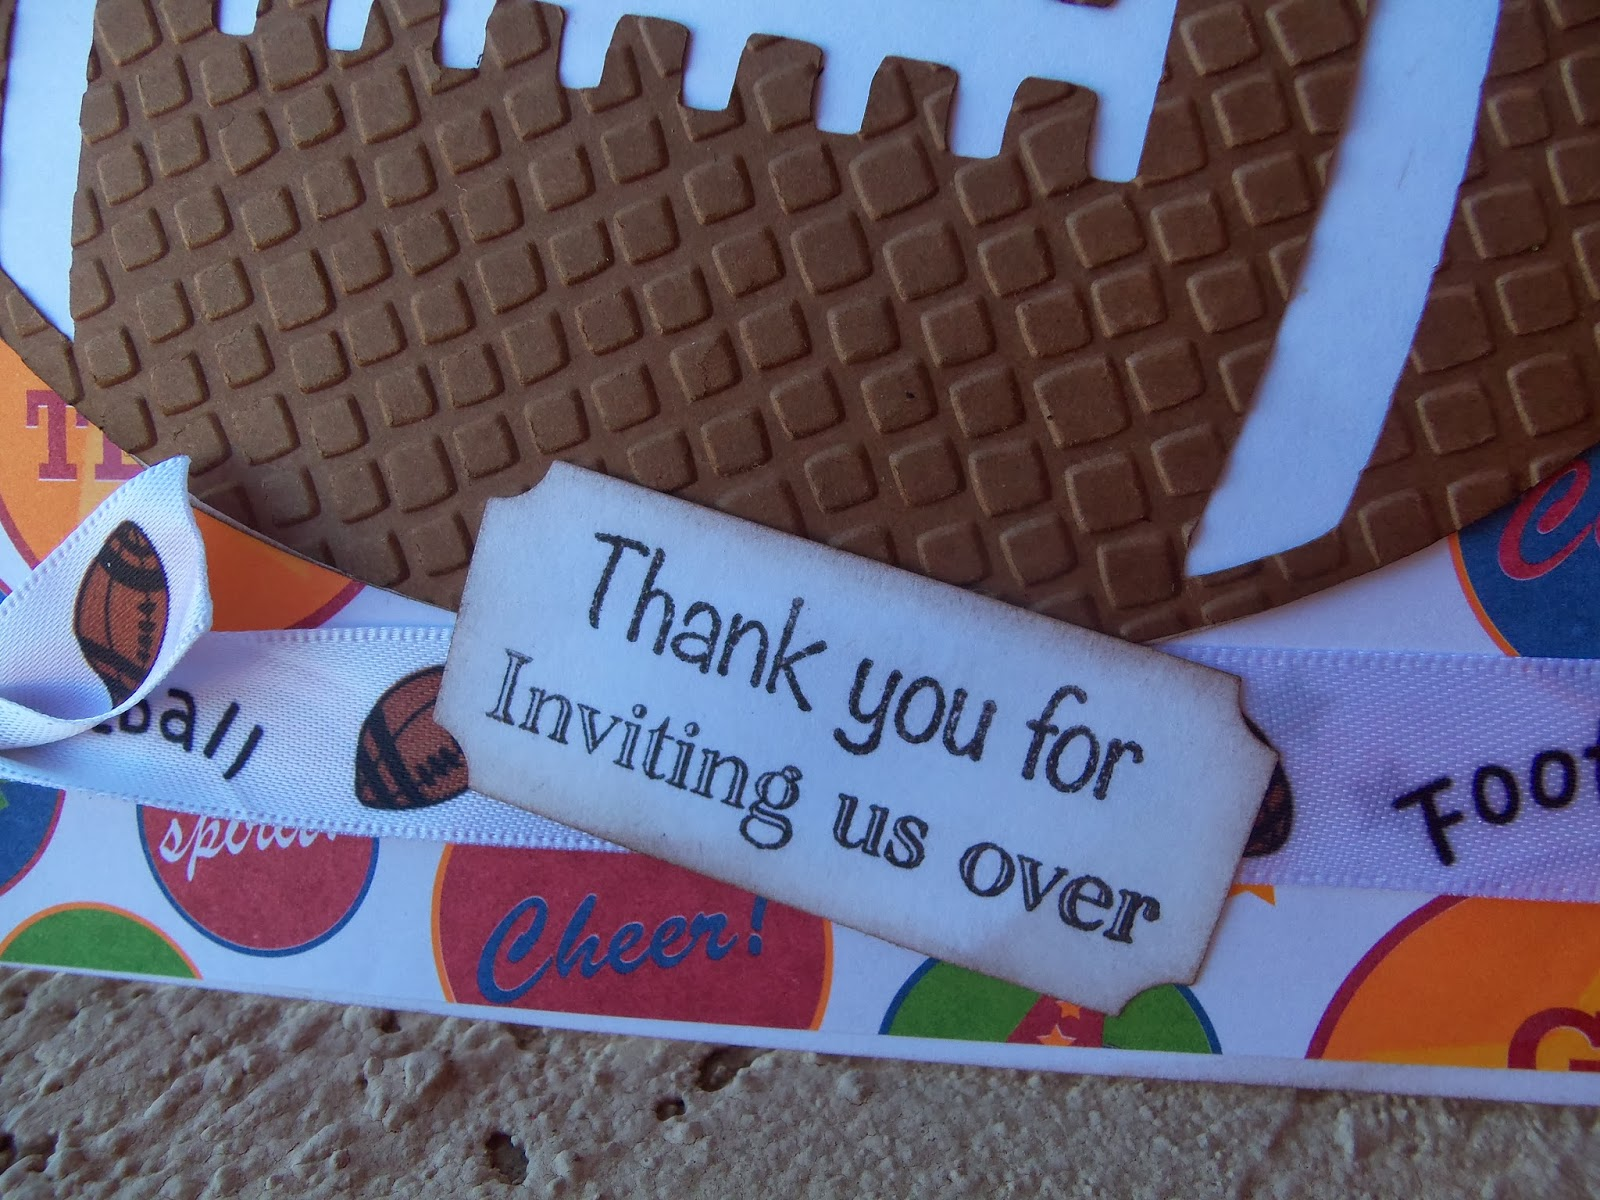 Doubleclick aka abusybee thank you for inviting us over super mosaic cuttlebug embossing folder i found football ribbon in my stash paper from scrap pile cupid copper skittles doubleclick thank you for inviting us filmwisefo